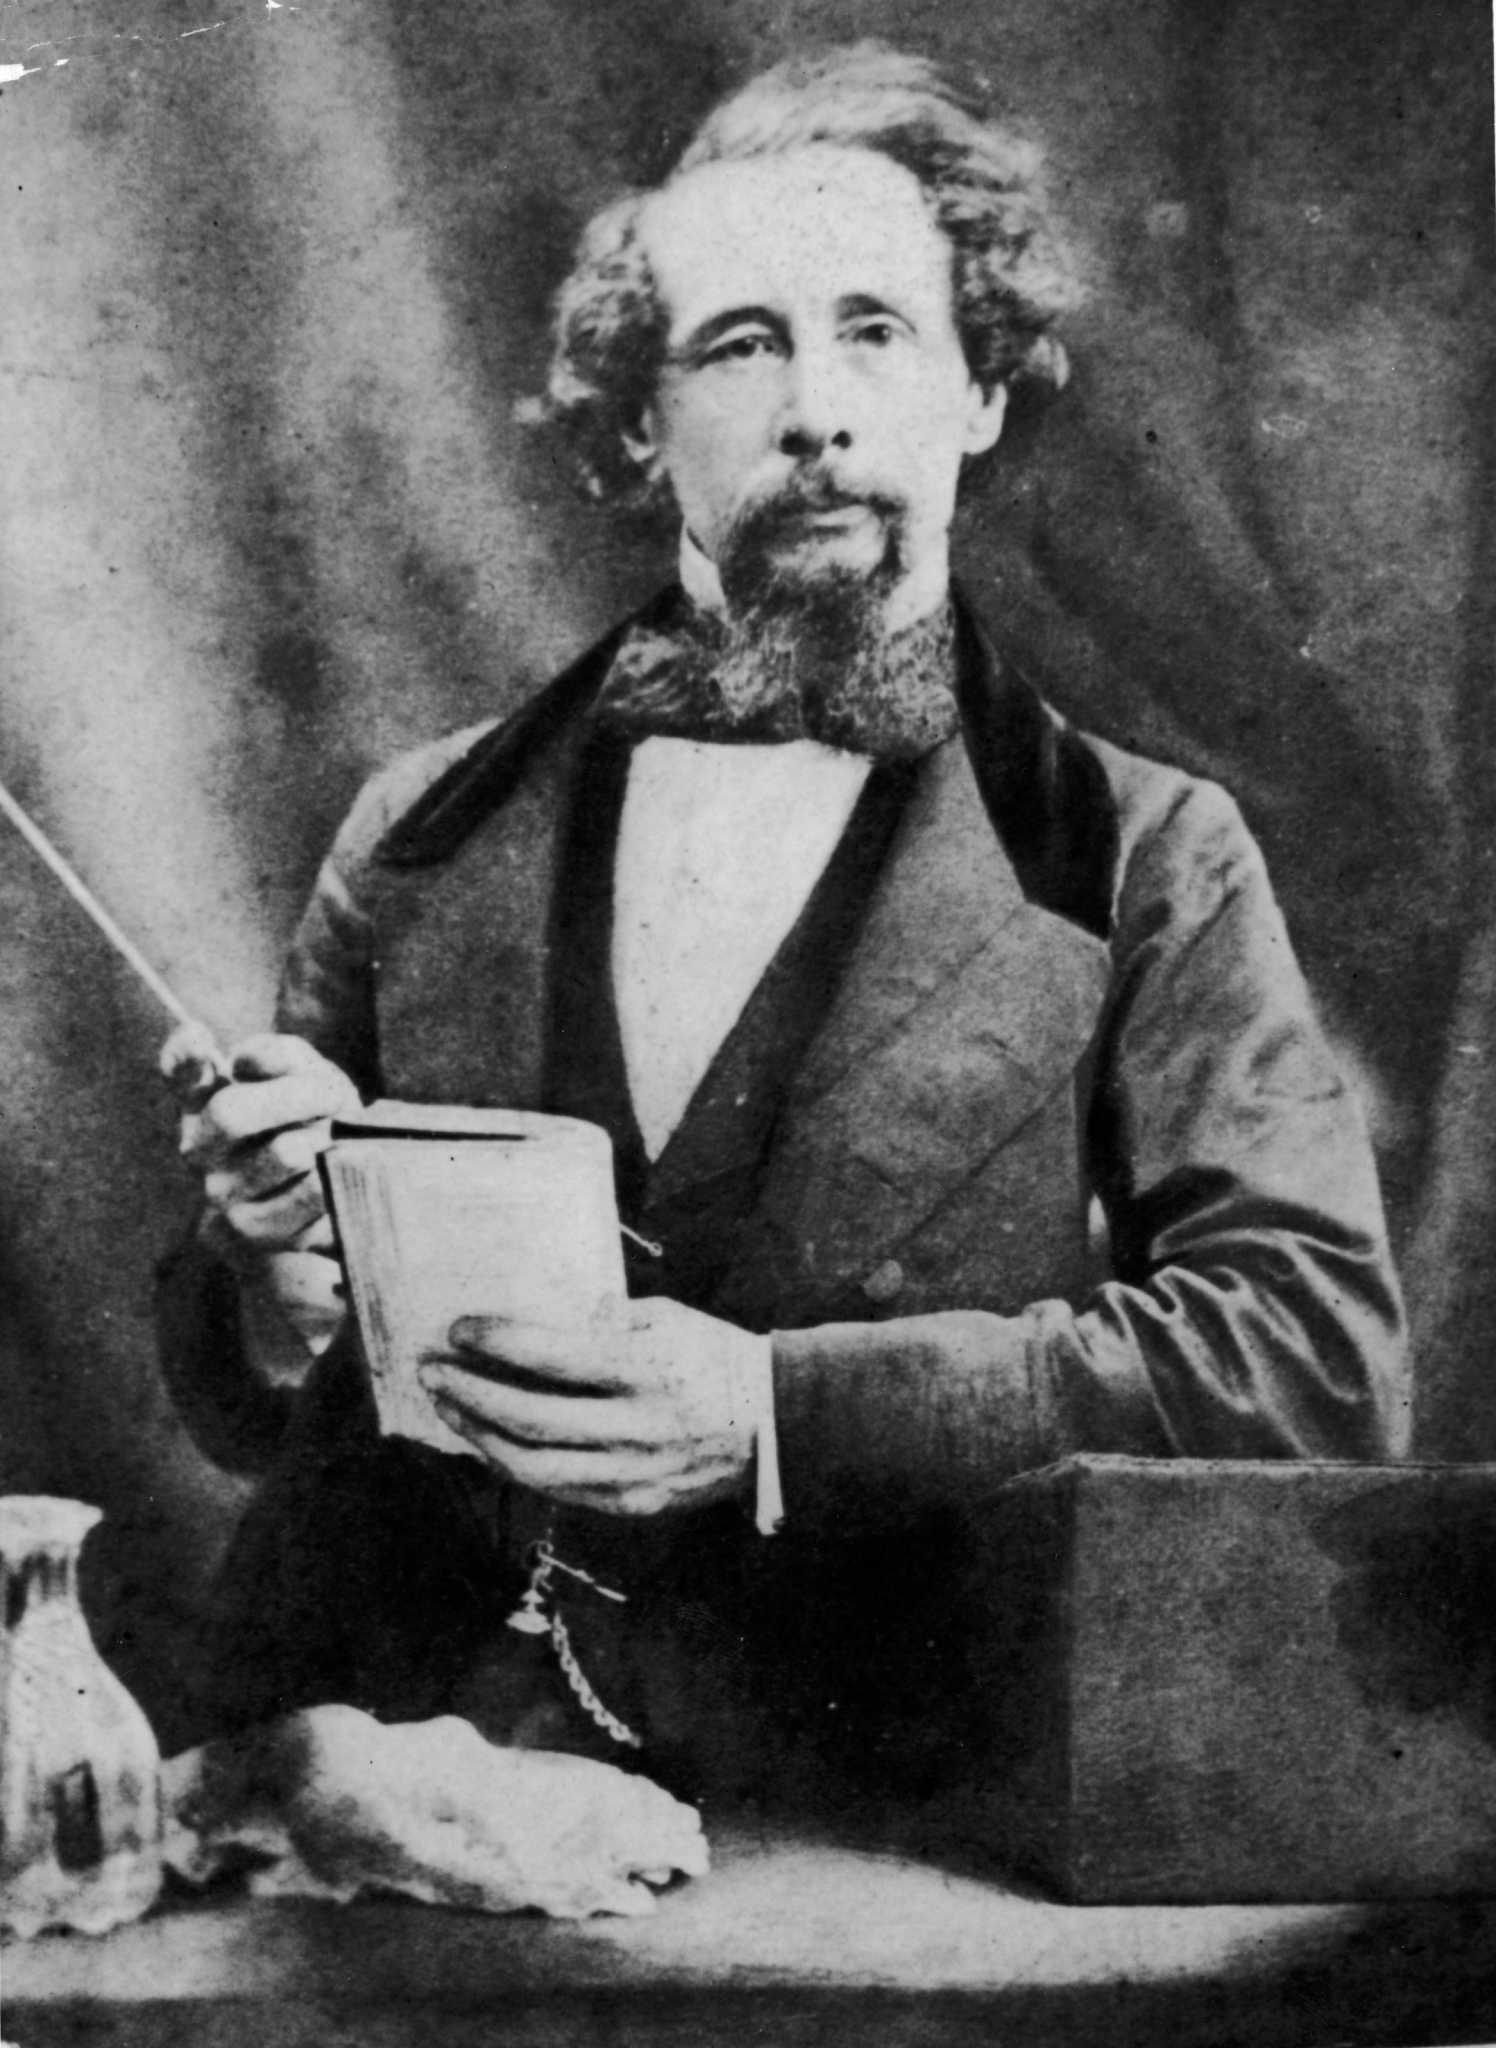 Charles Dickens' beloved 'A Christmas Carol' continues to spread hope and goodwill ...